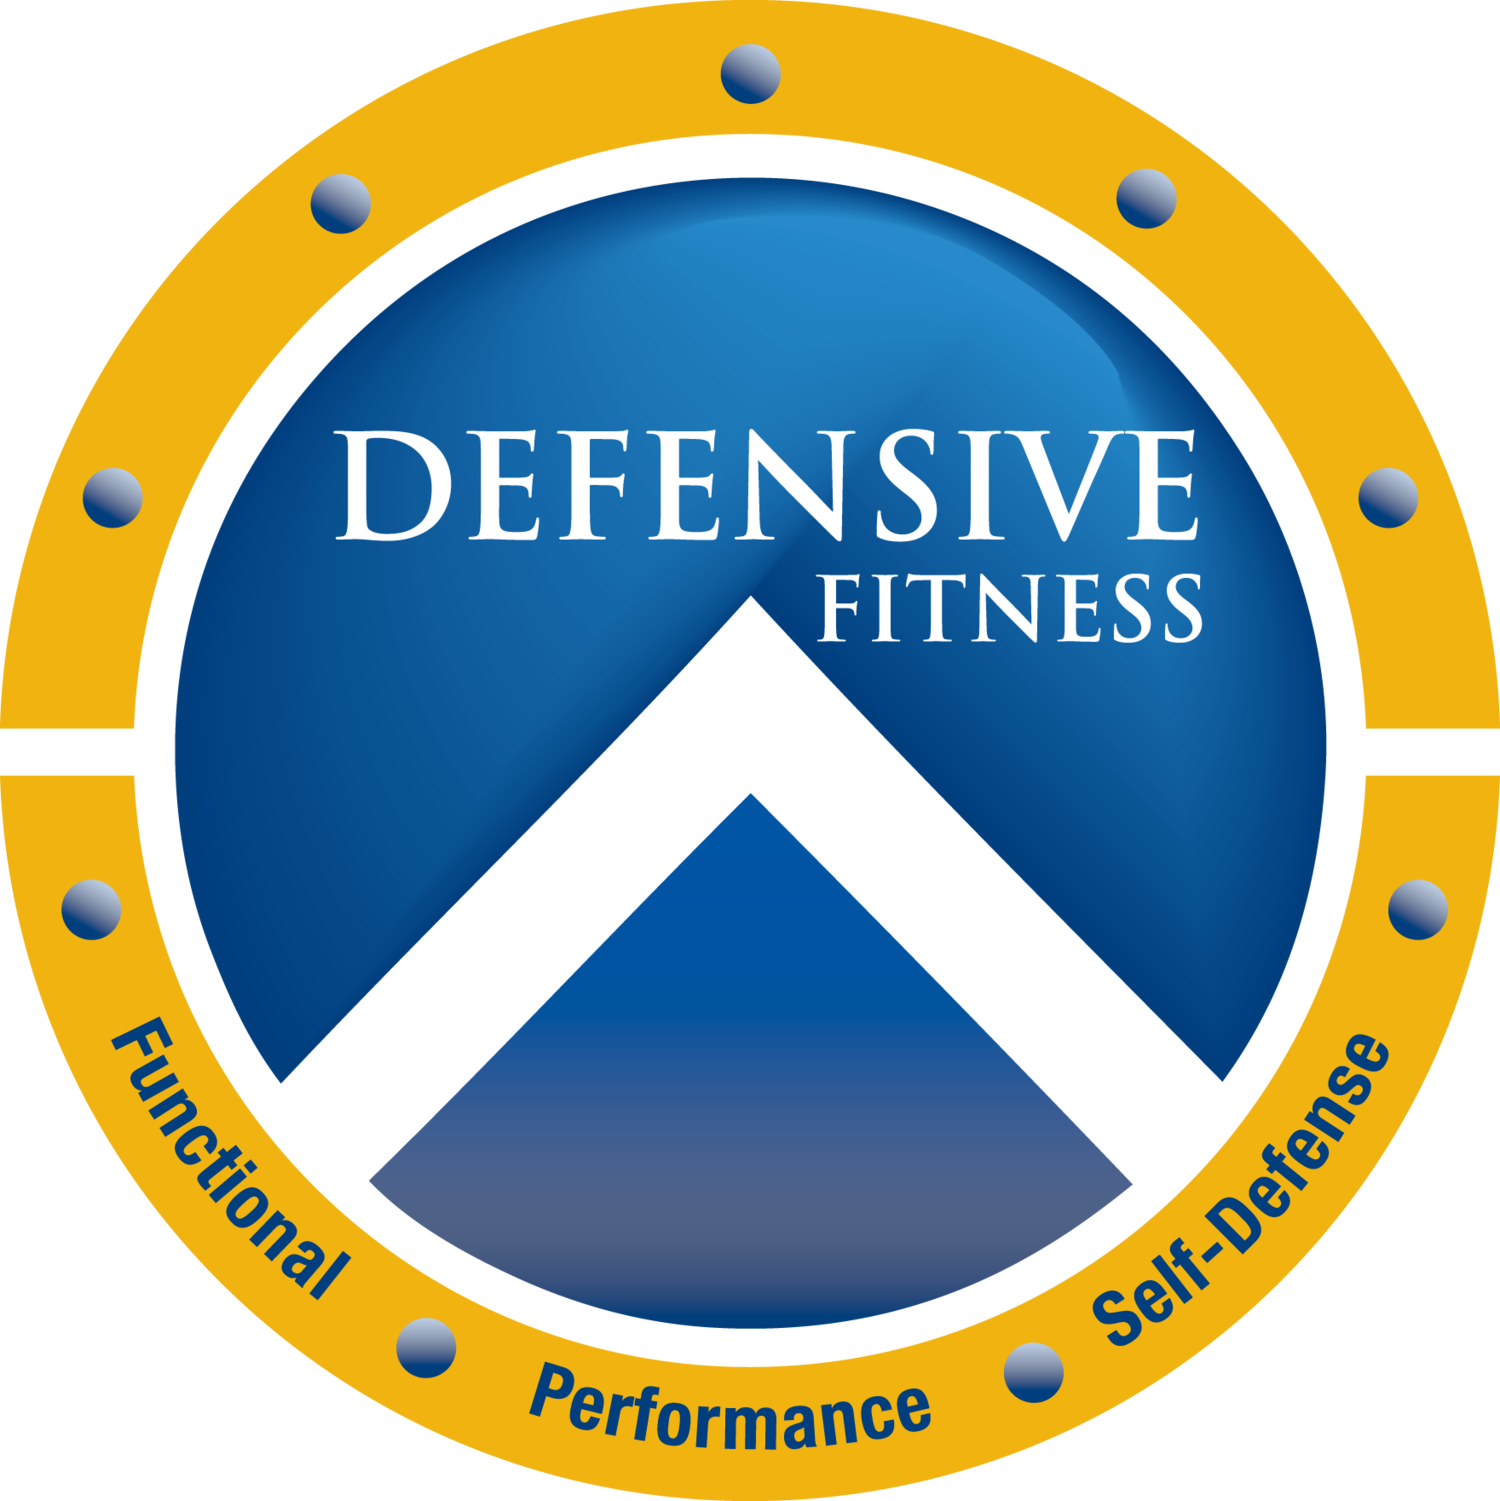 Defensive Fitness